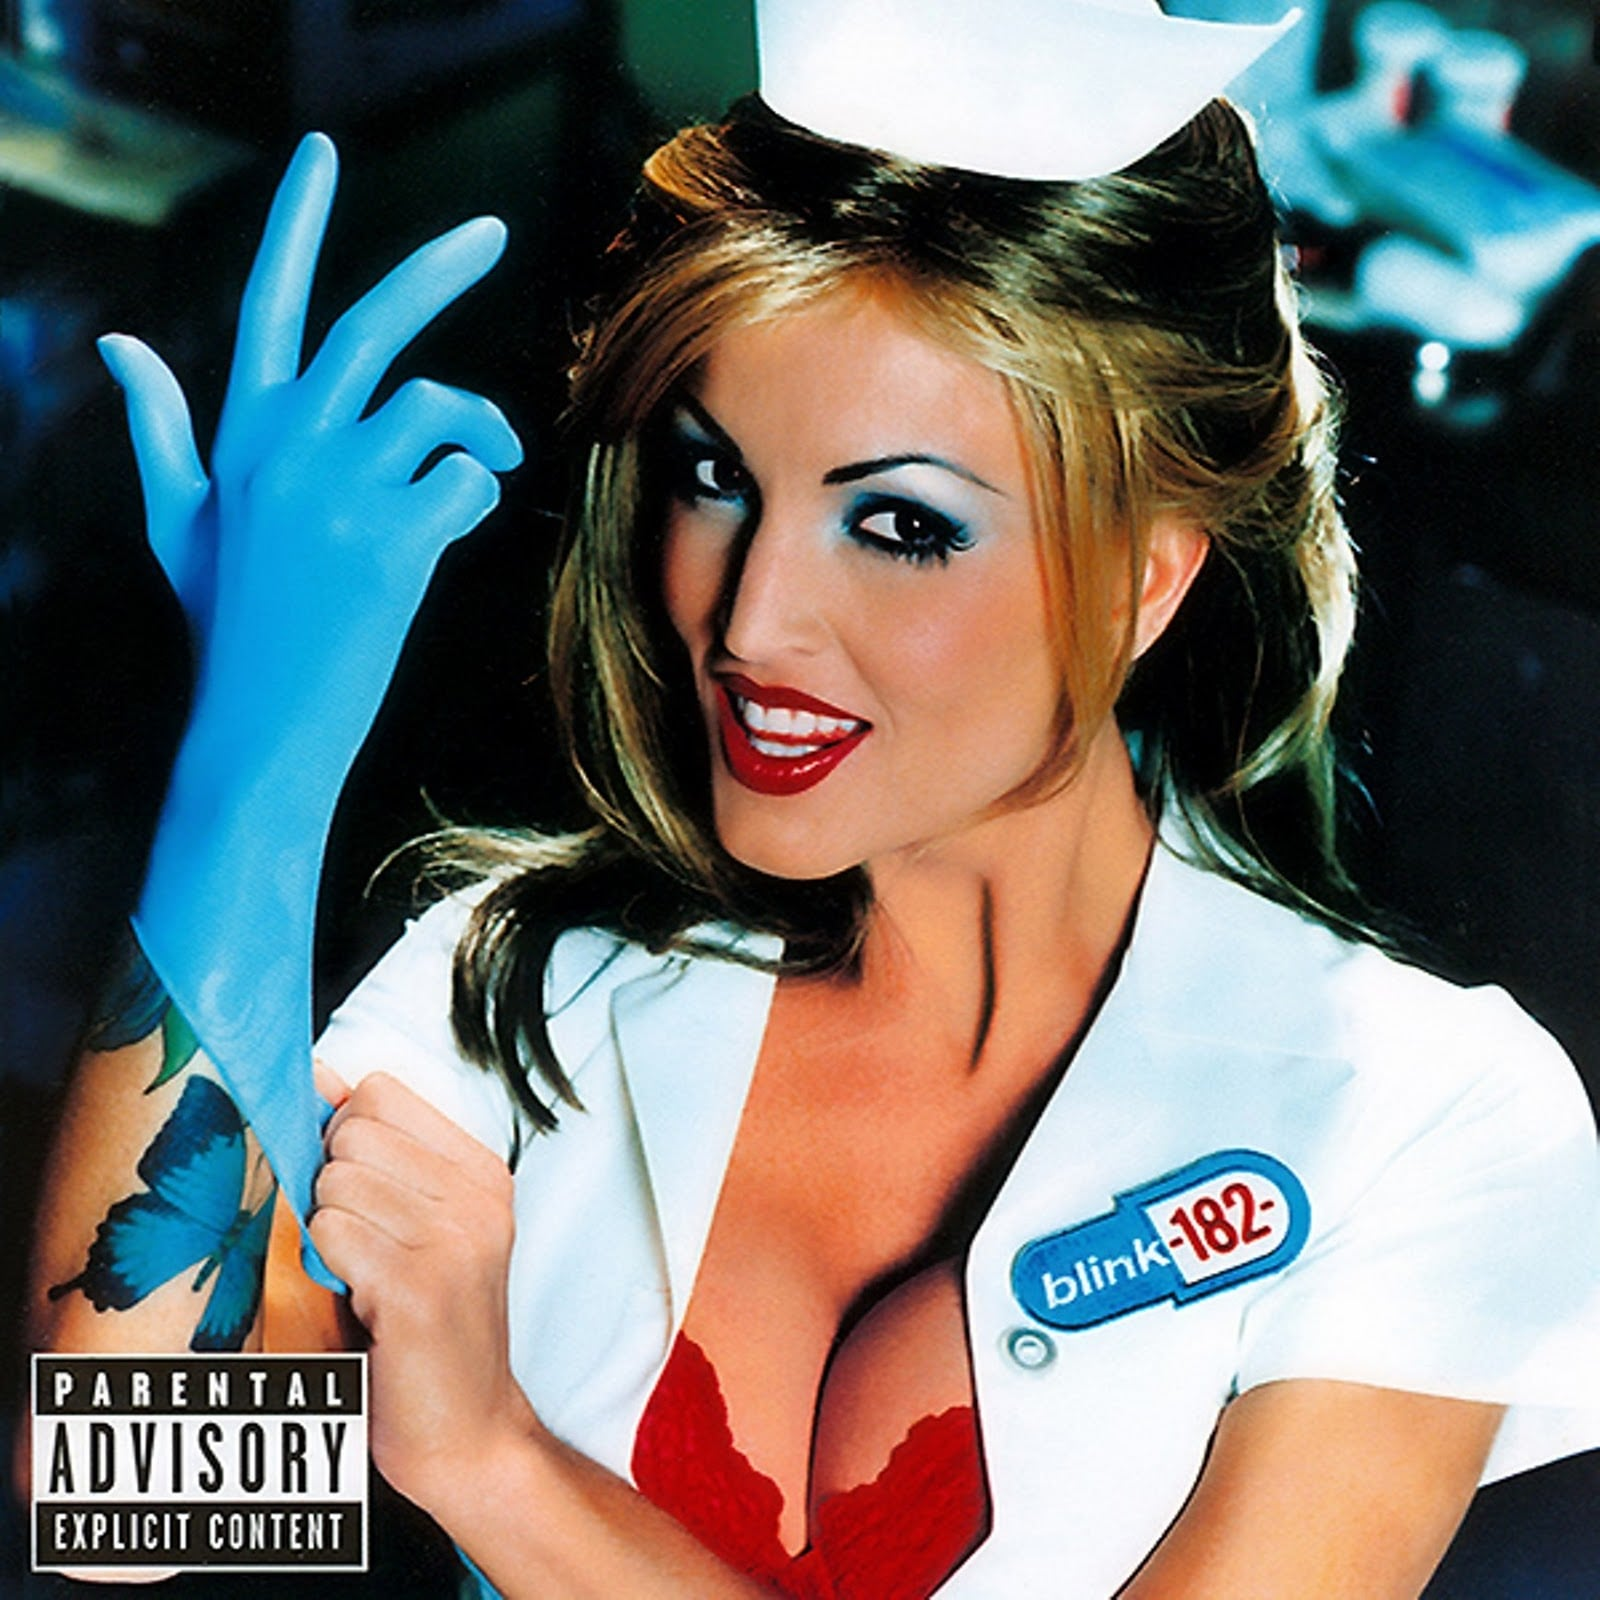 Enema of the State by Blink-182